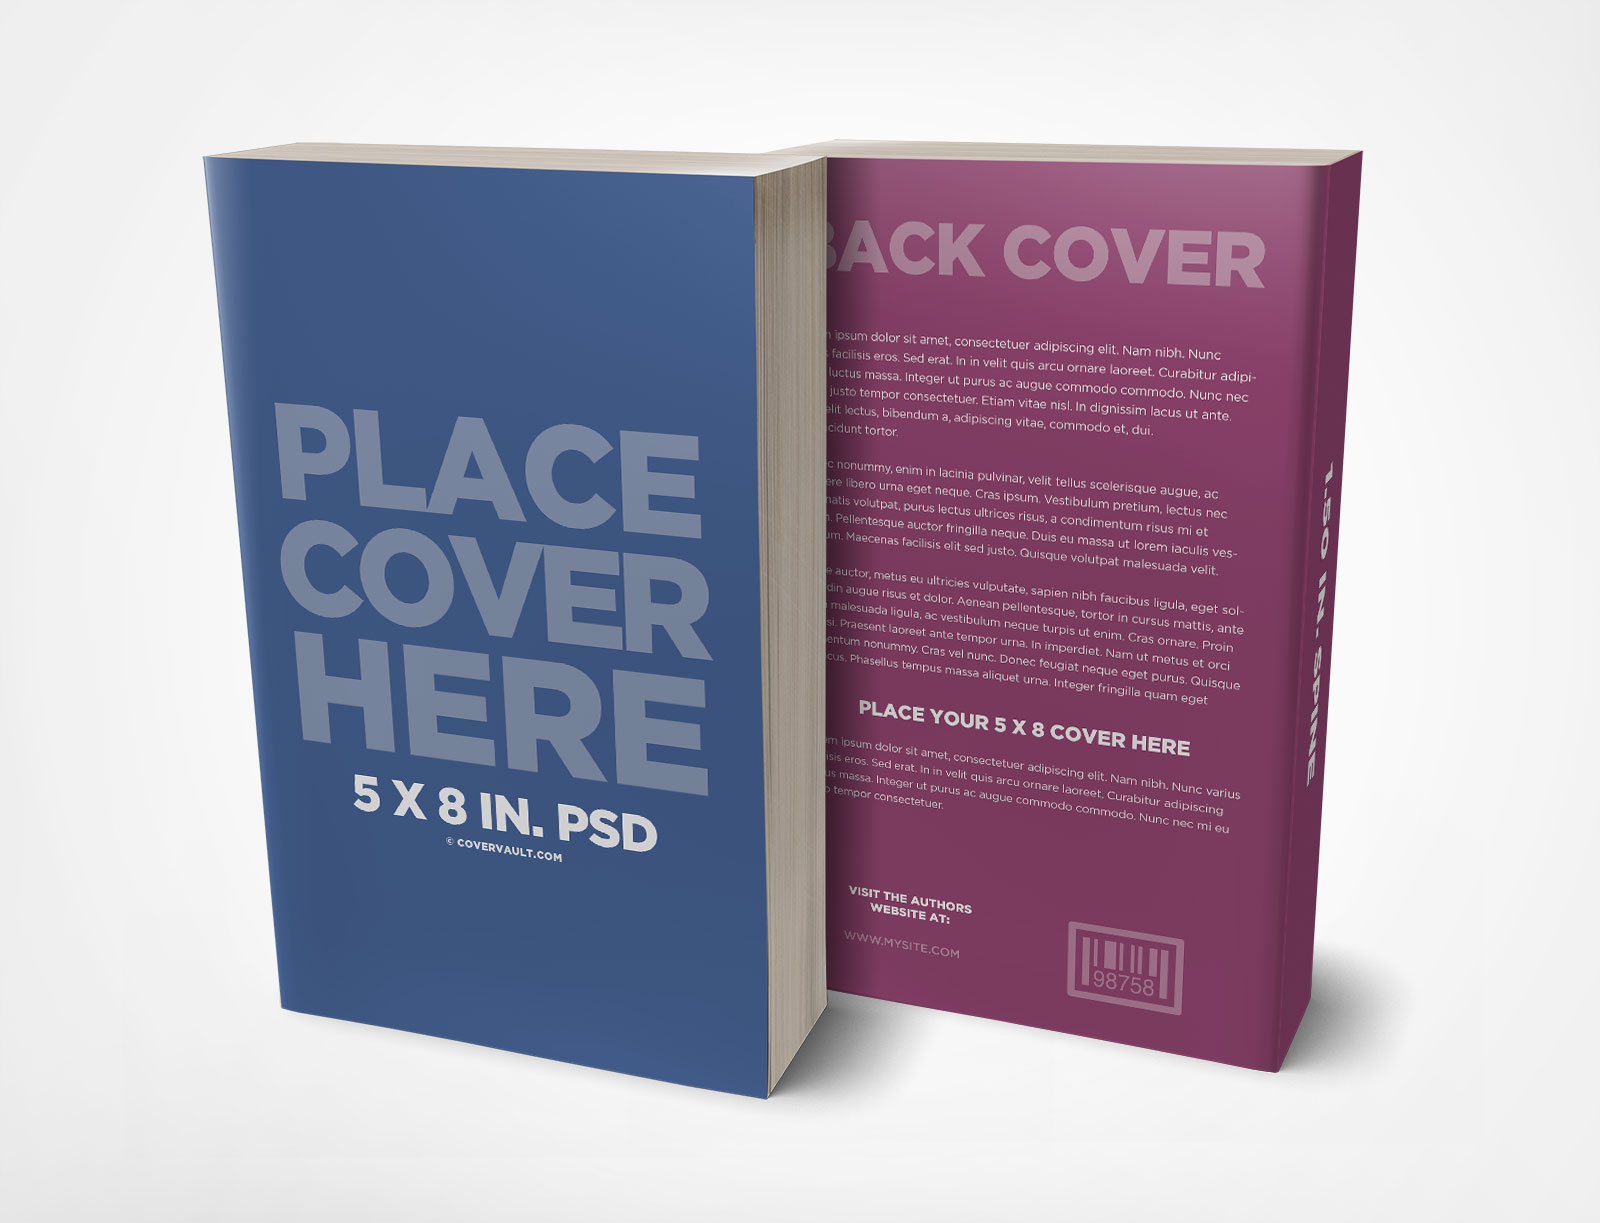 Free-Standing-Paperback-Book-Mockup-PSD-2